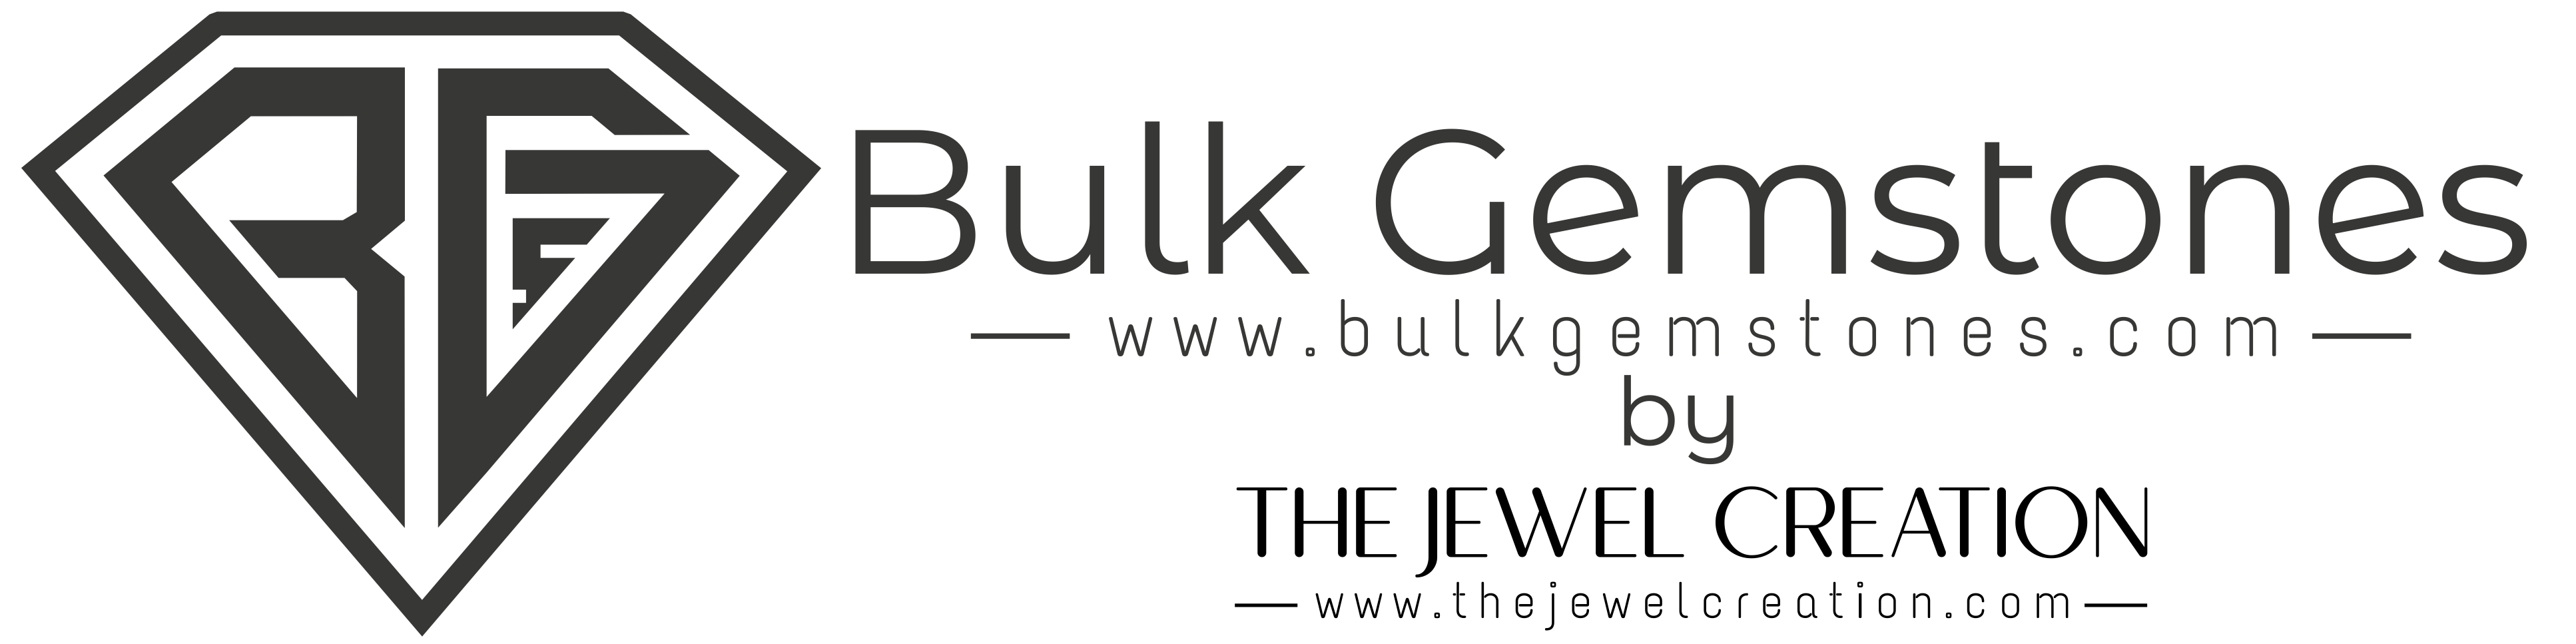 Bulk Gemstones